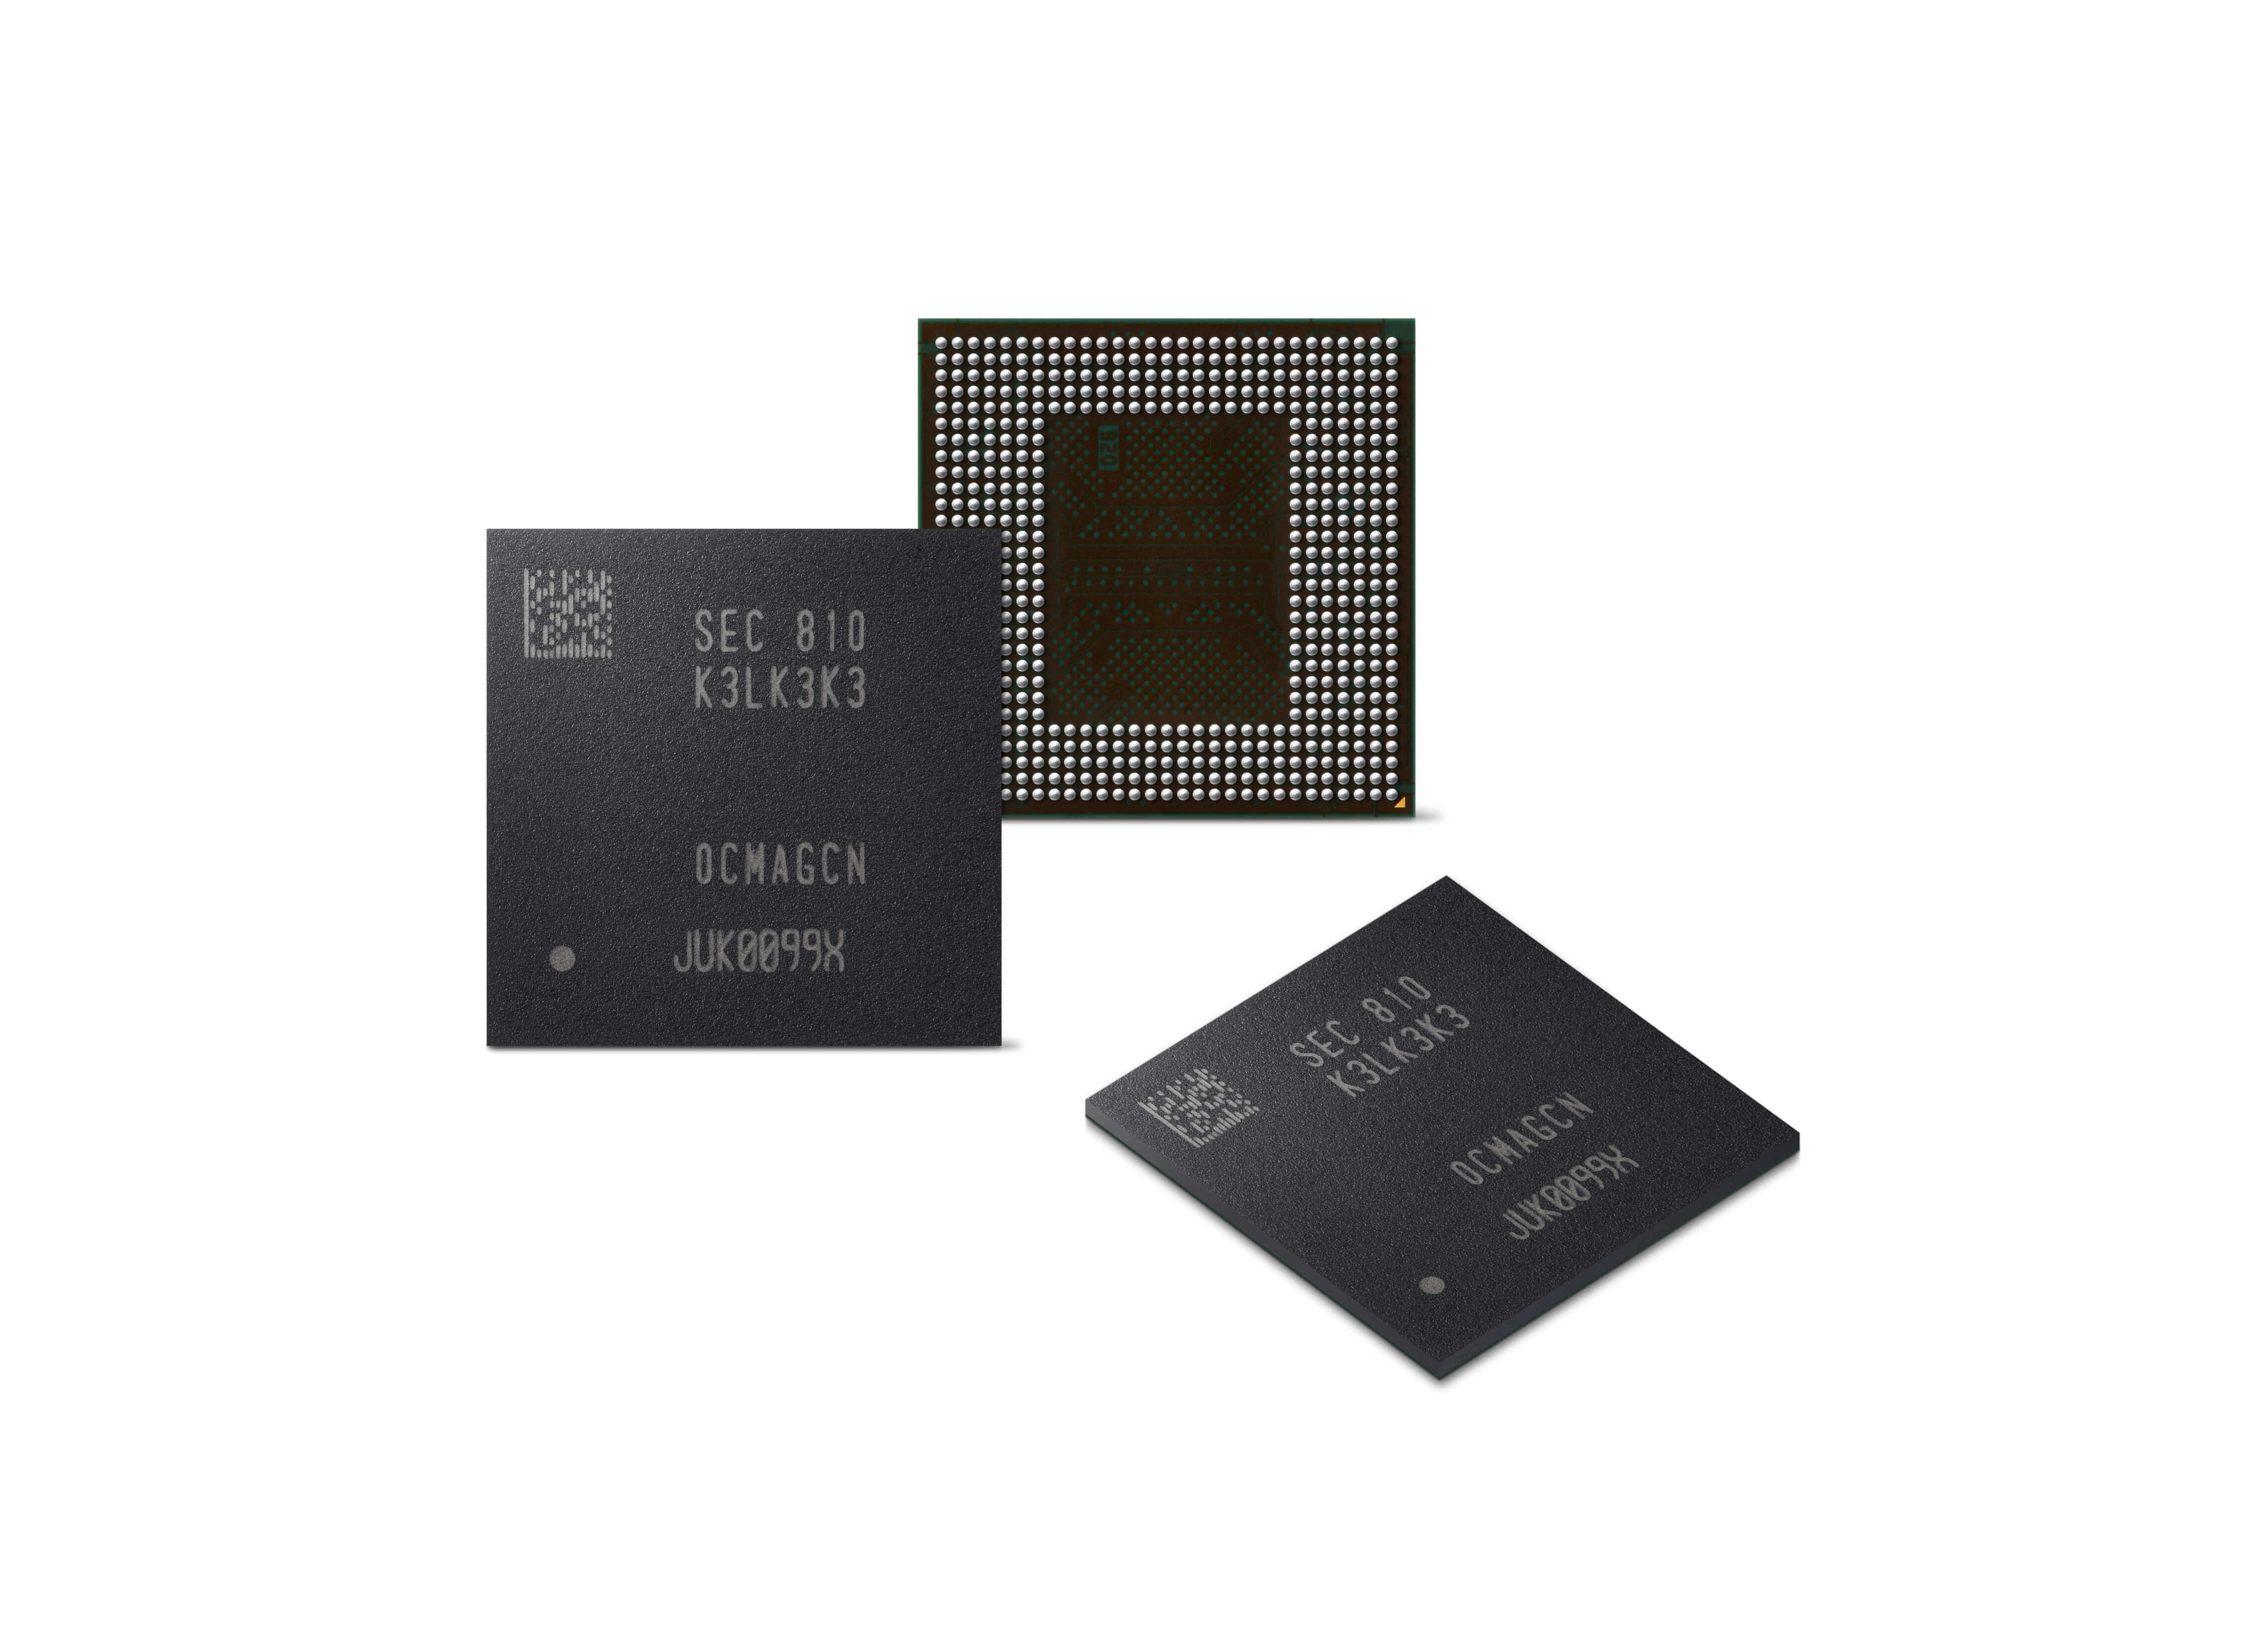 Samsung Announces 8-gigabit LPDDR5 DRAM with Greatly Reduced Power Consumption